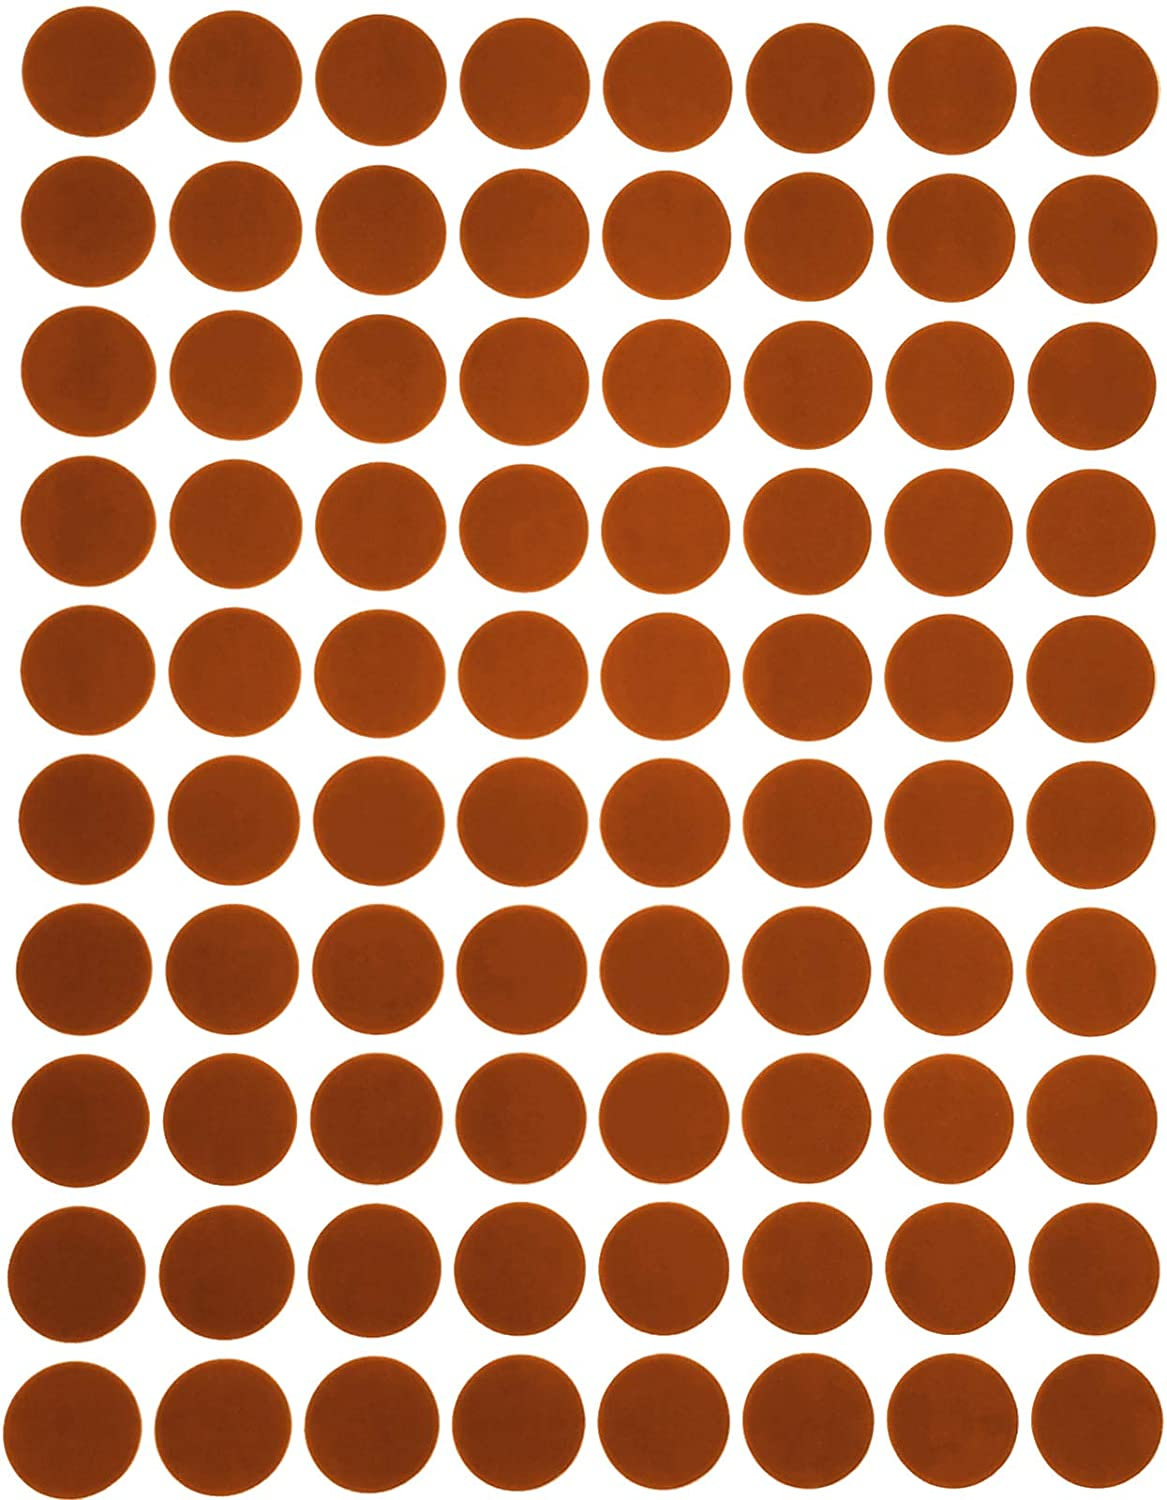 Colored Dot Stickers for Decorating Inventory 13mm 1//2 Inch Labeling 1920 Pack